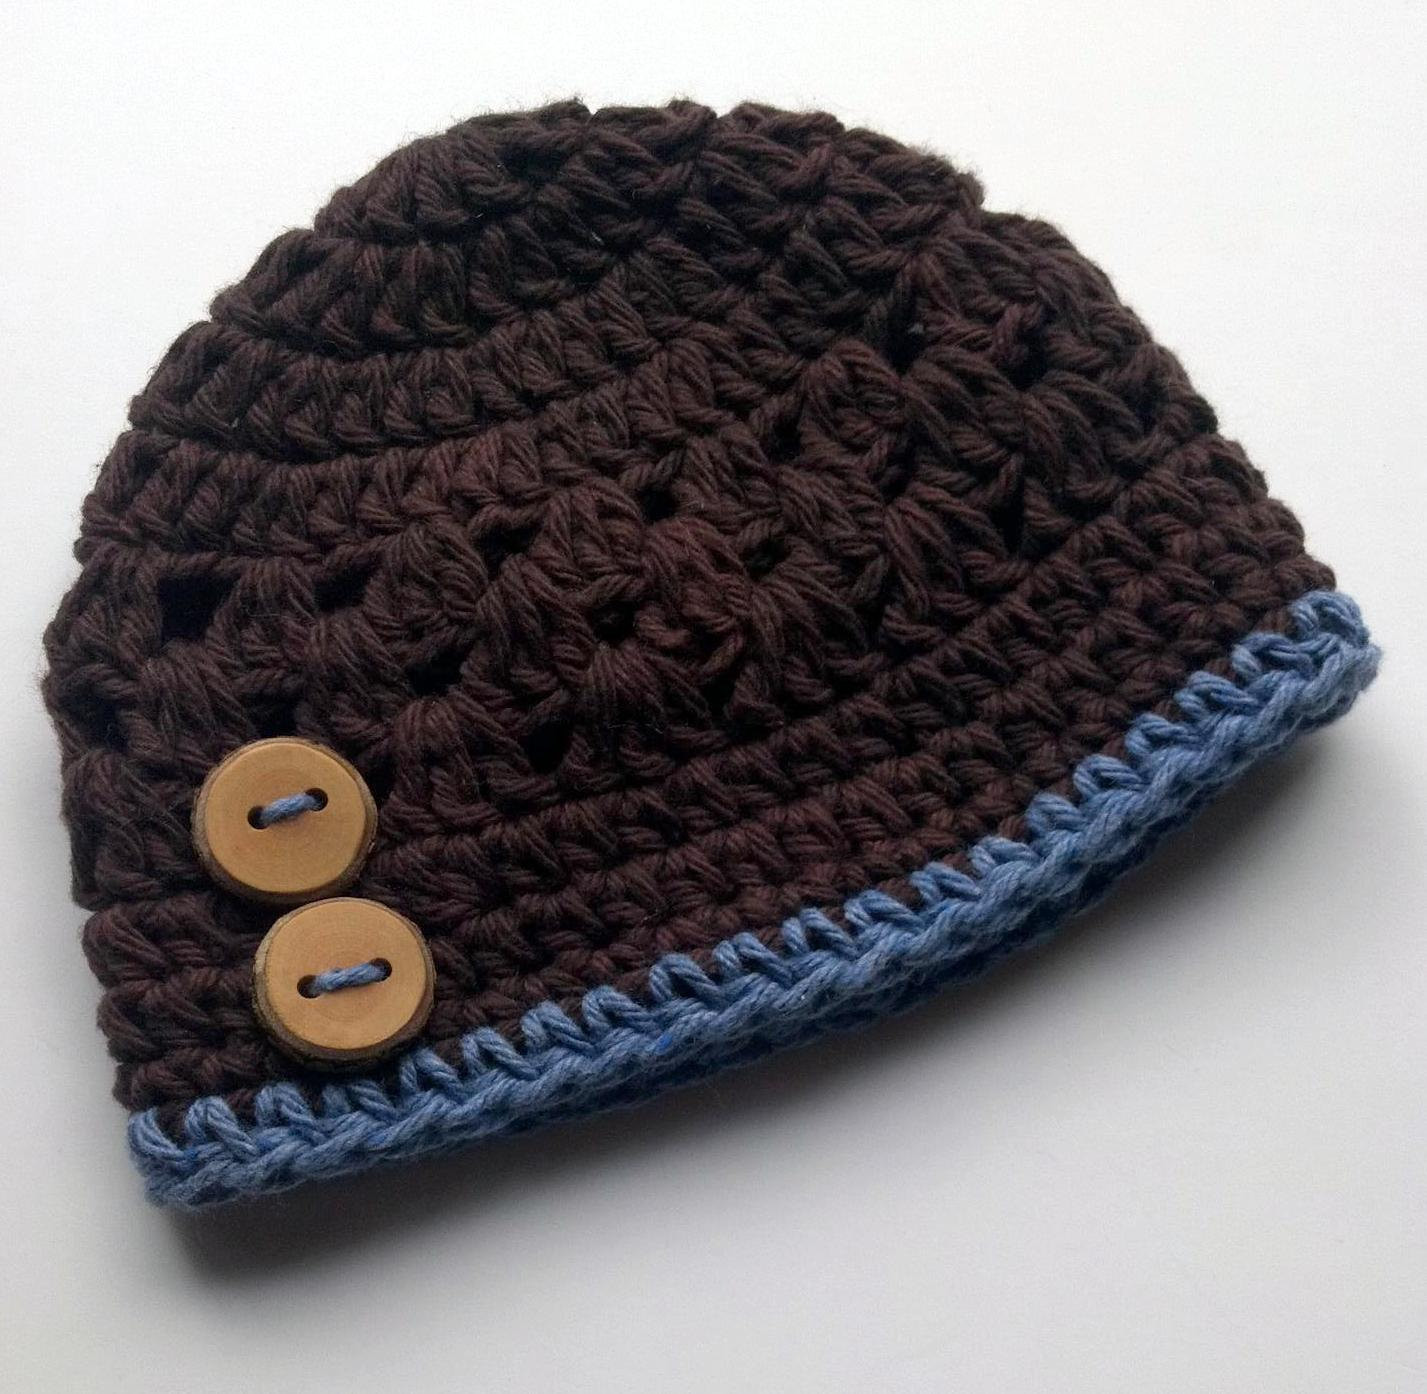 Newborn Baby Boy Hats Awesome Baby Boy Baby Boy Crochet Hat Baby Boy Beanie Hat Newborn Of Perfect 44 Ideas Newborn Baby Boy Hats